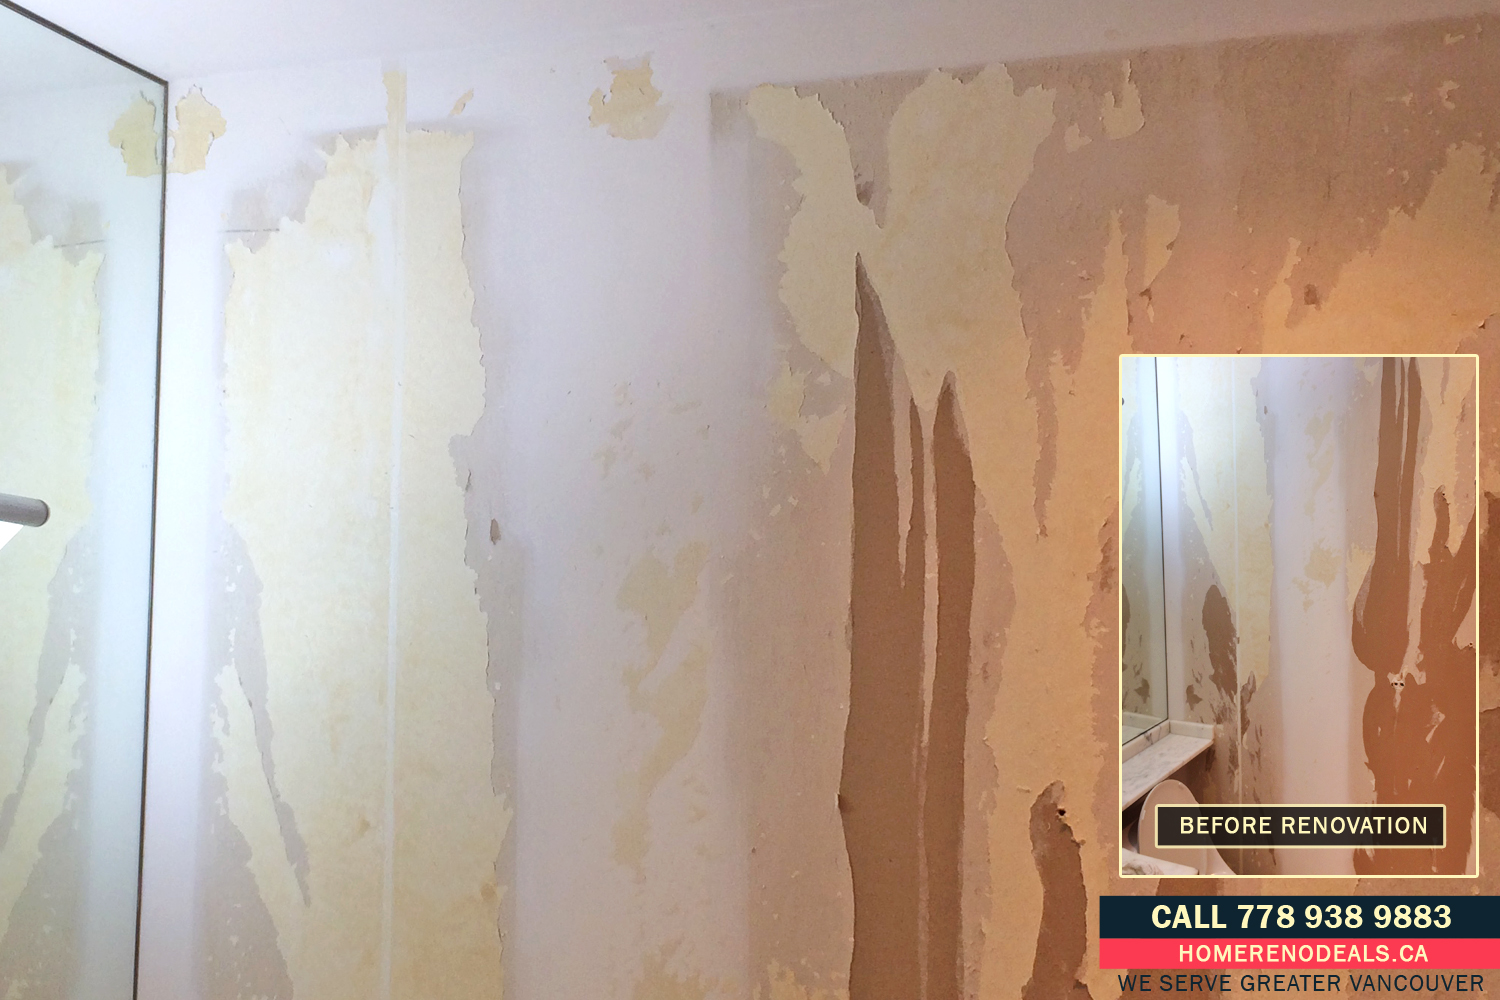 Severely damaged bathroom walls after the home owner removed wallpaper